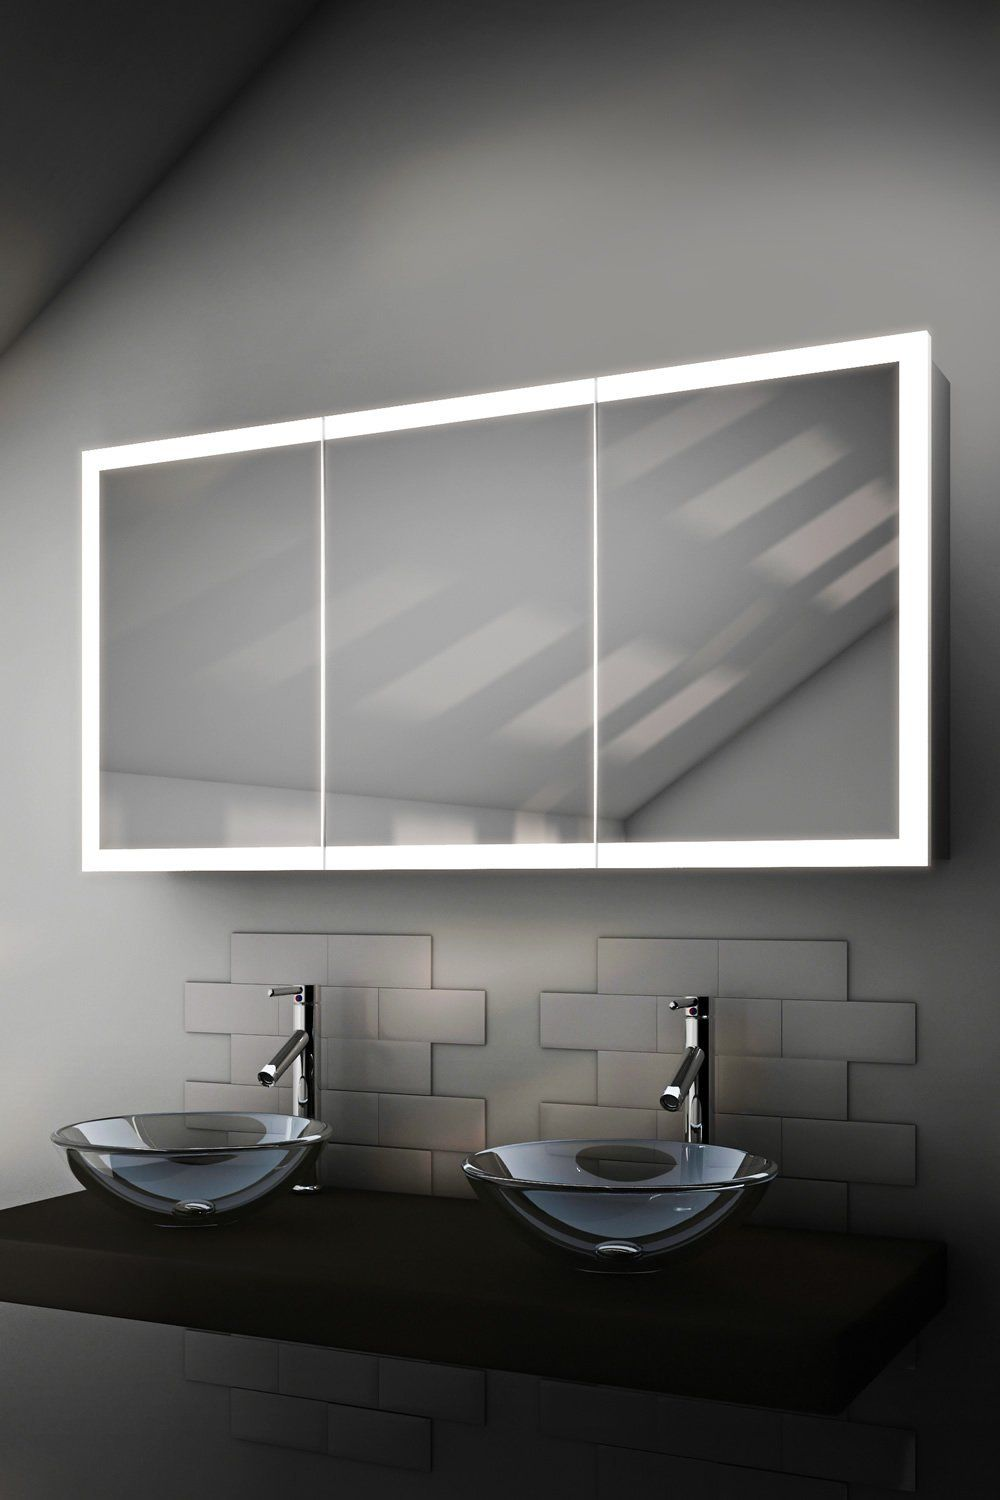 Best Lighted Vanity Mirror Reviews In 2020 Lighted Vanity Mirror Mirror Cabinets Bathroom Mirror Cabinet